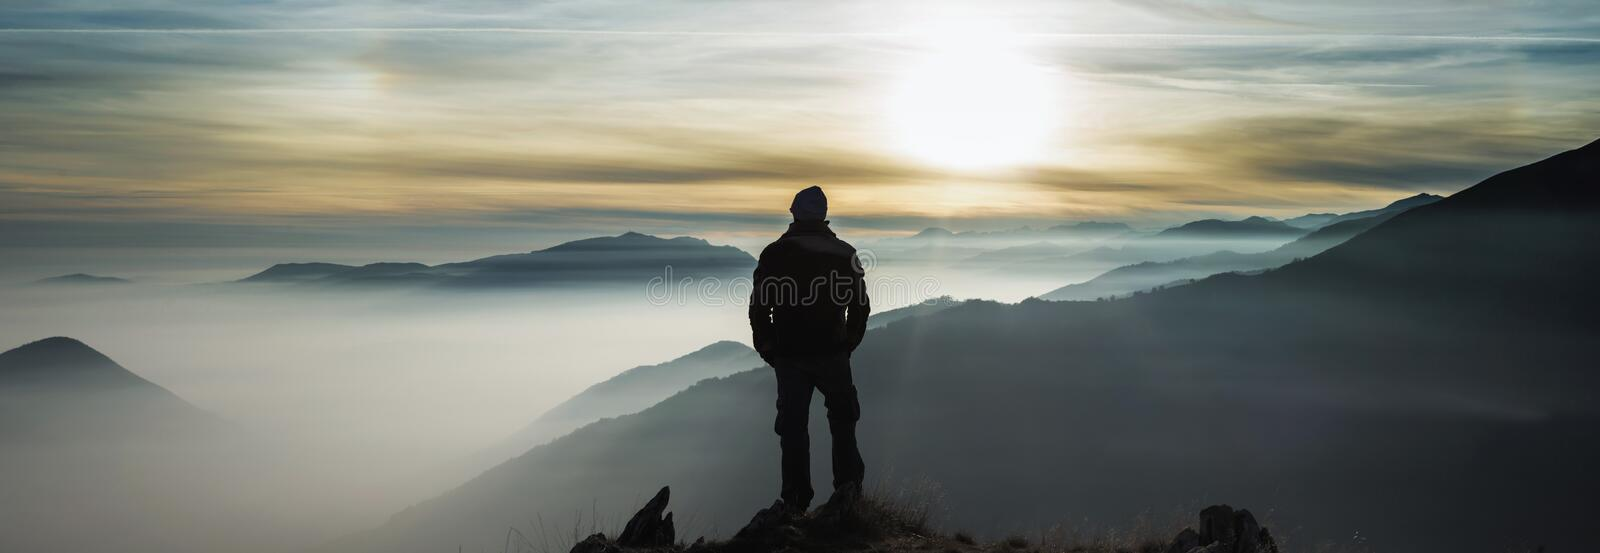 Man watching mountains clouds from a peak stock photos